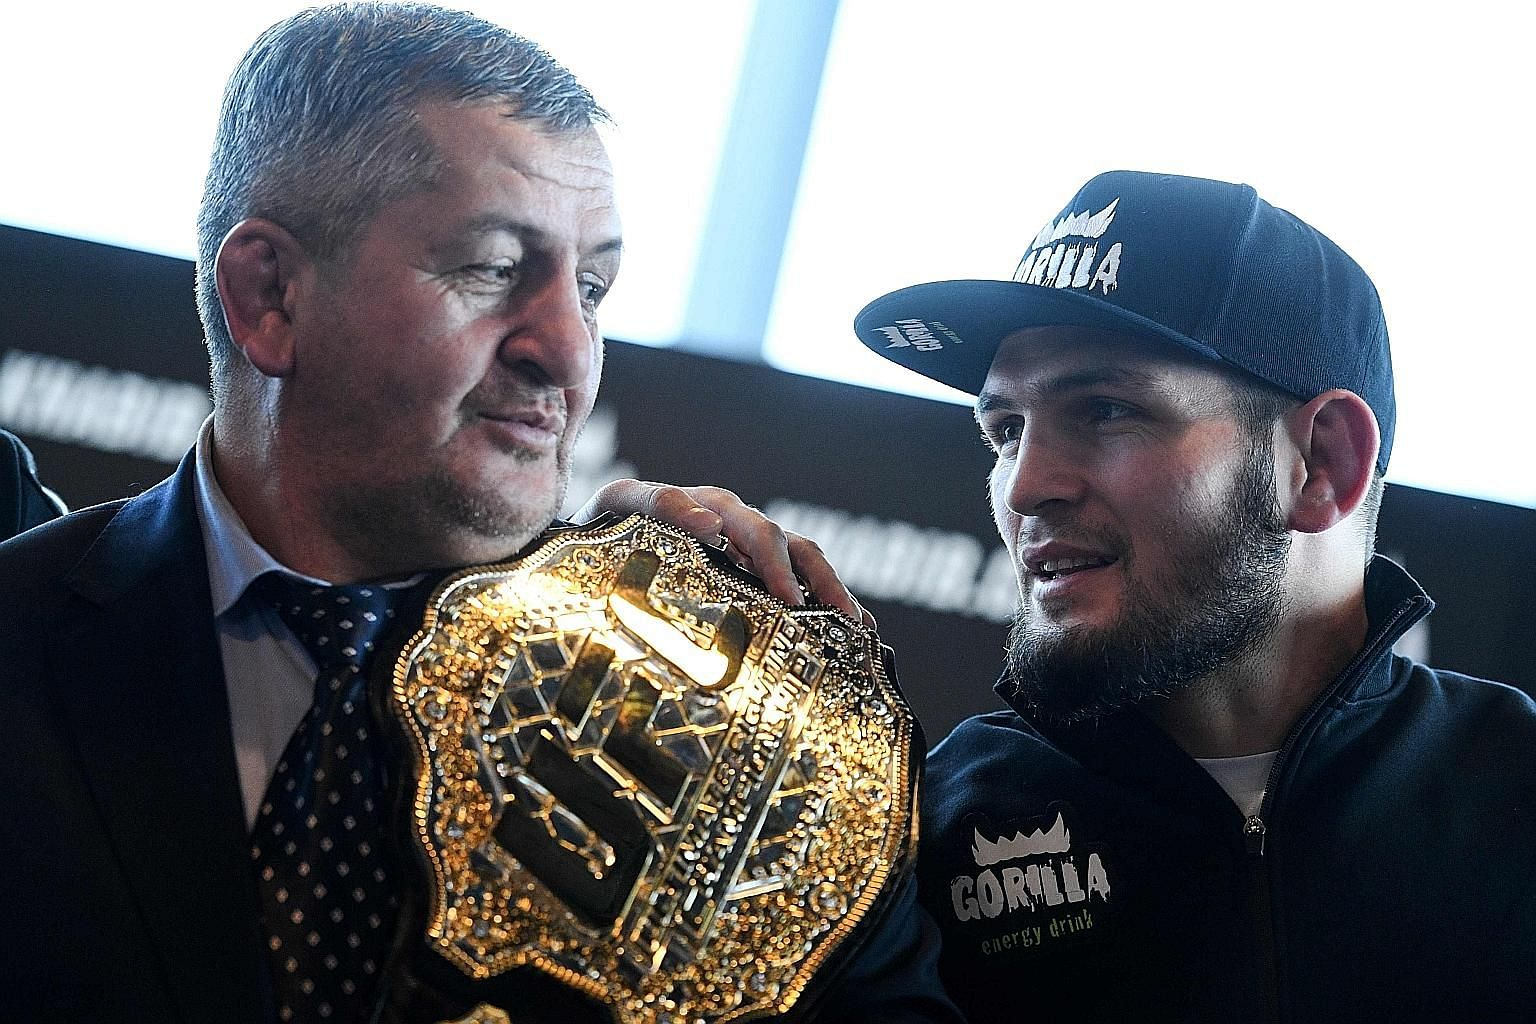 """Khabib Nurmagomedov with his father in 2018. UFC chief Dana White says Abdulmanap's death this month from Covid-19 effects has """"been very rough"""" on the Russian MMA fighter. PHOTO: AGENCE FRANCE-PRESSE"""